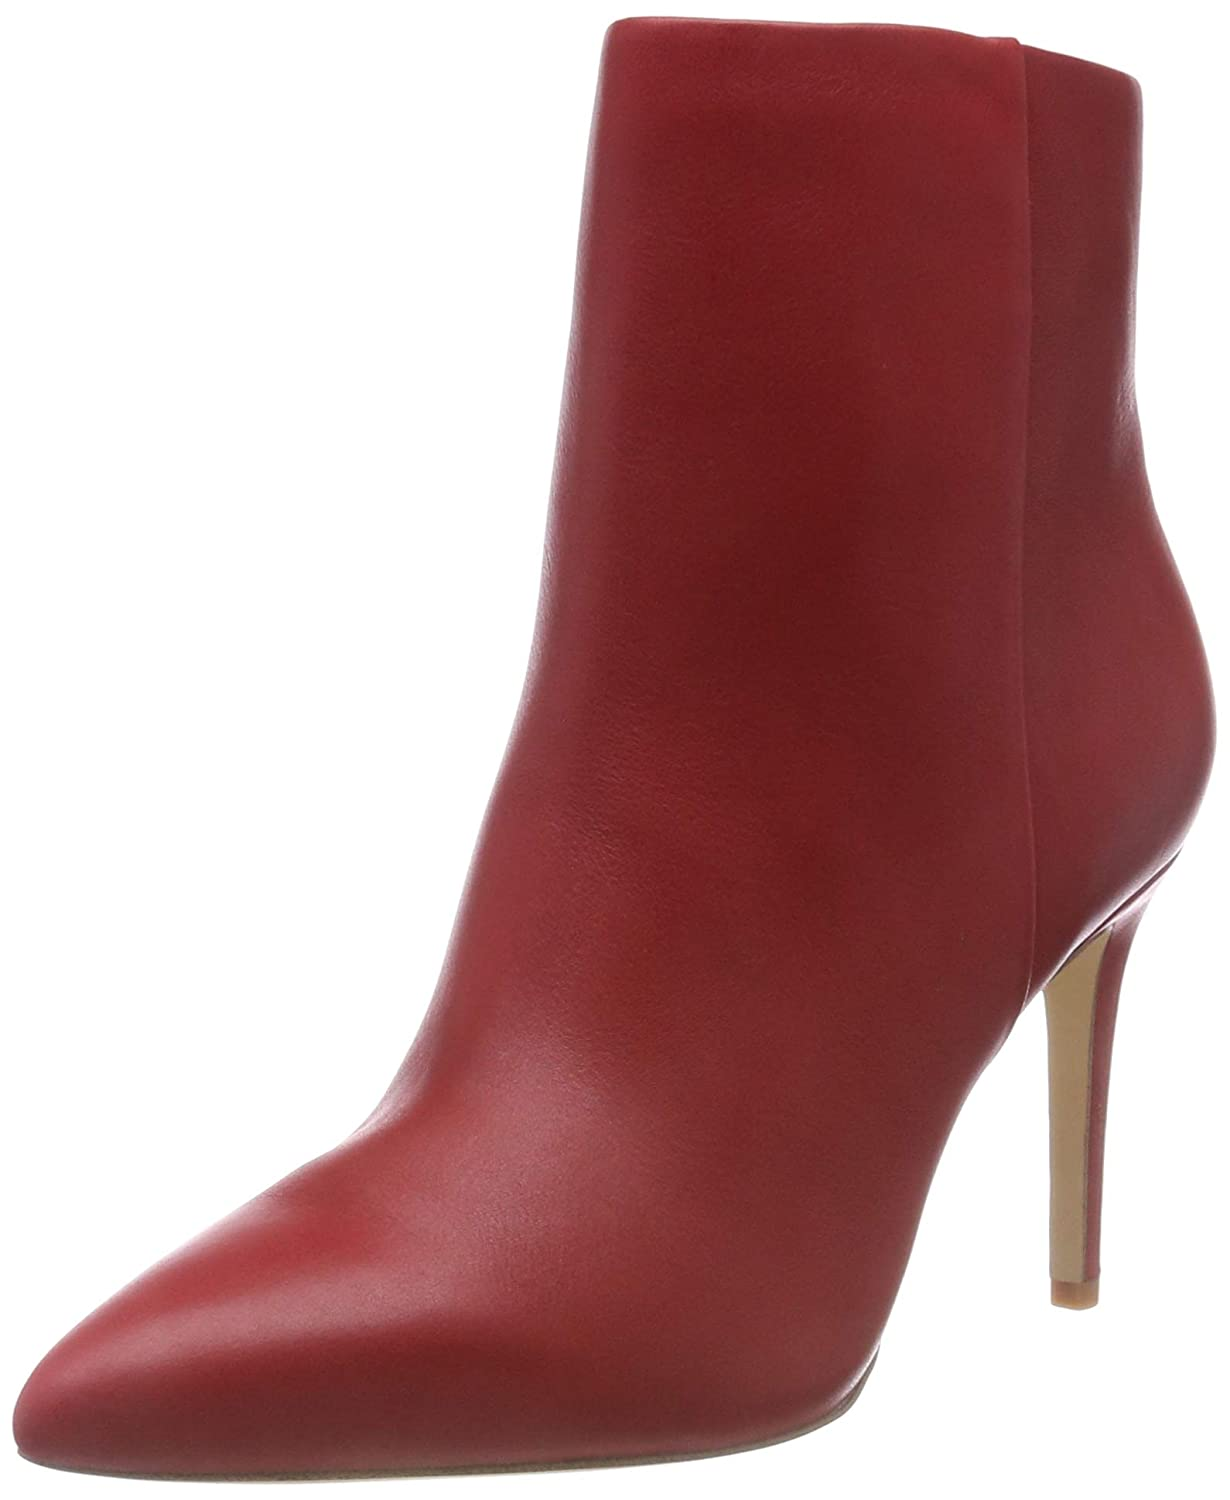 ALDO 62) B078T2LKCC Wiema, 10688 Botines Femme Rouge (Chili Pepper 62) 2eed22d - therethere.space